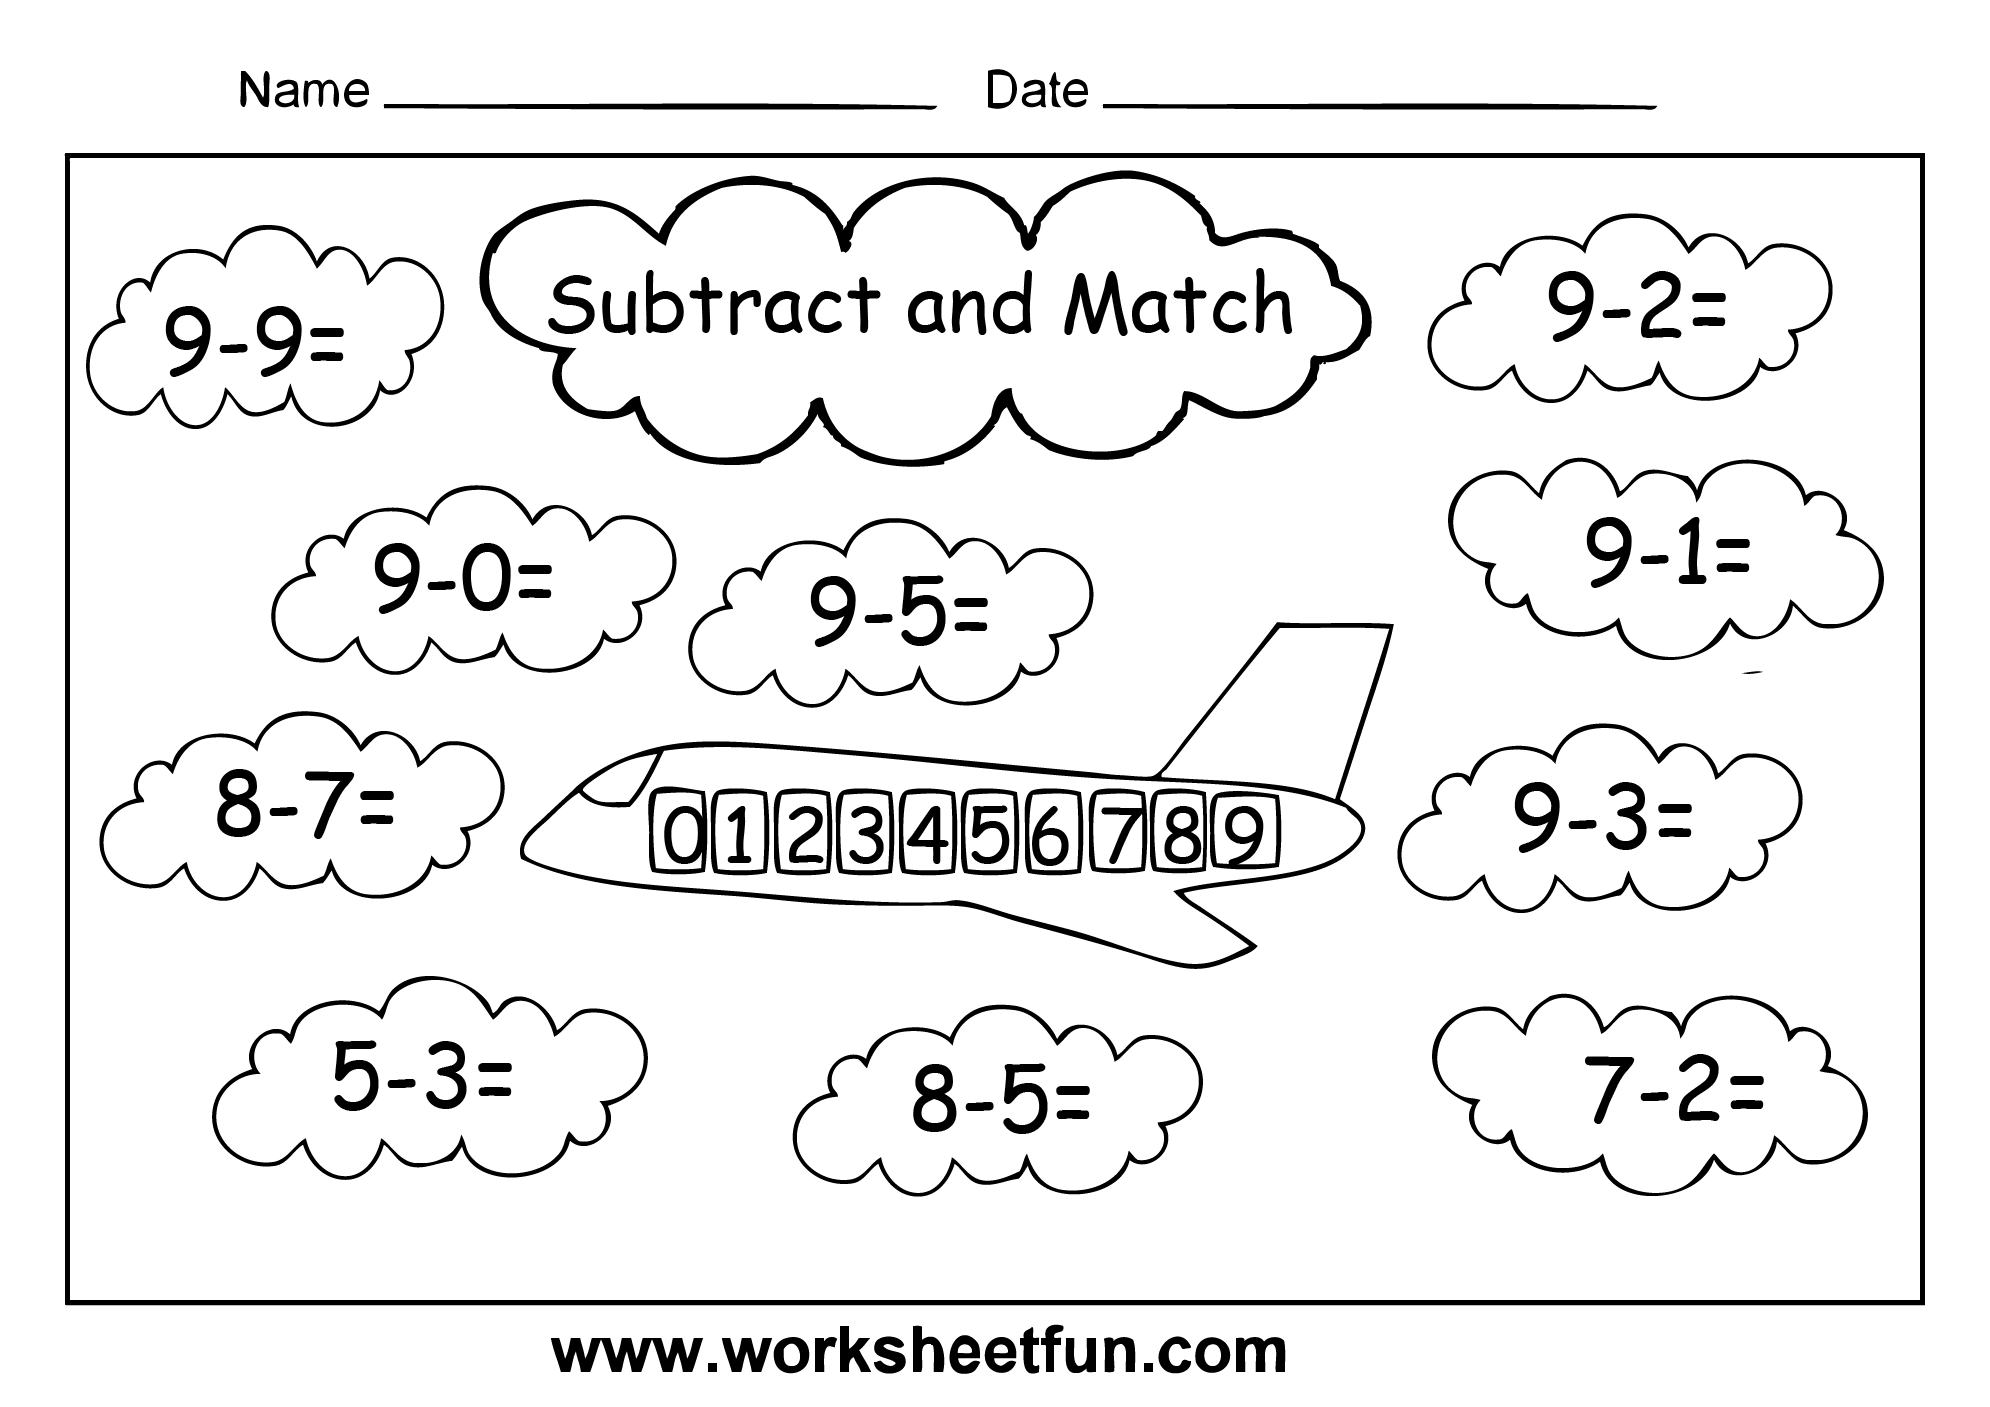 Worksheet Grade 1 Worksheets Free noconformity free worksheet page 2 online worksheets for grade 1 1000 images about on pinterest first math subtraction